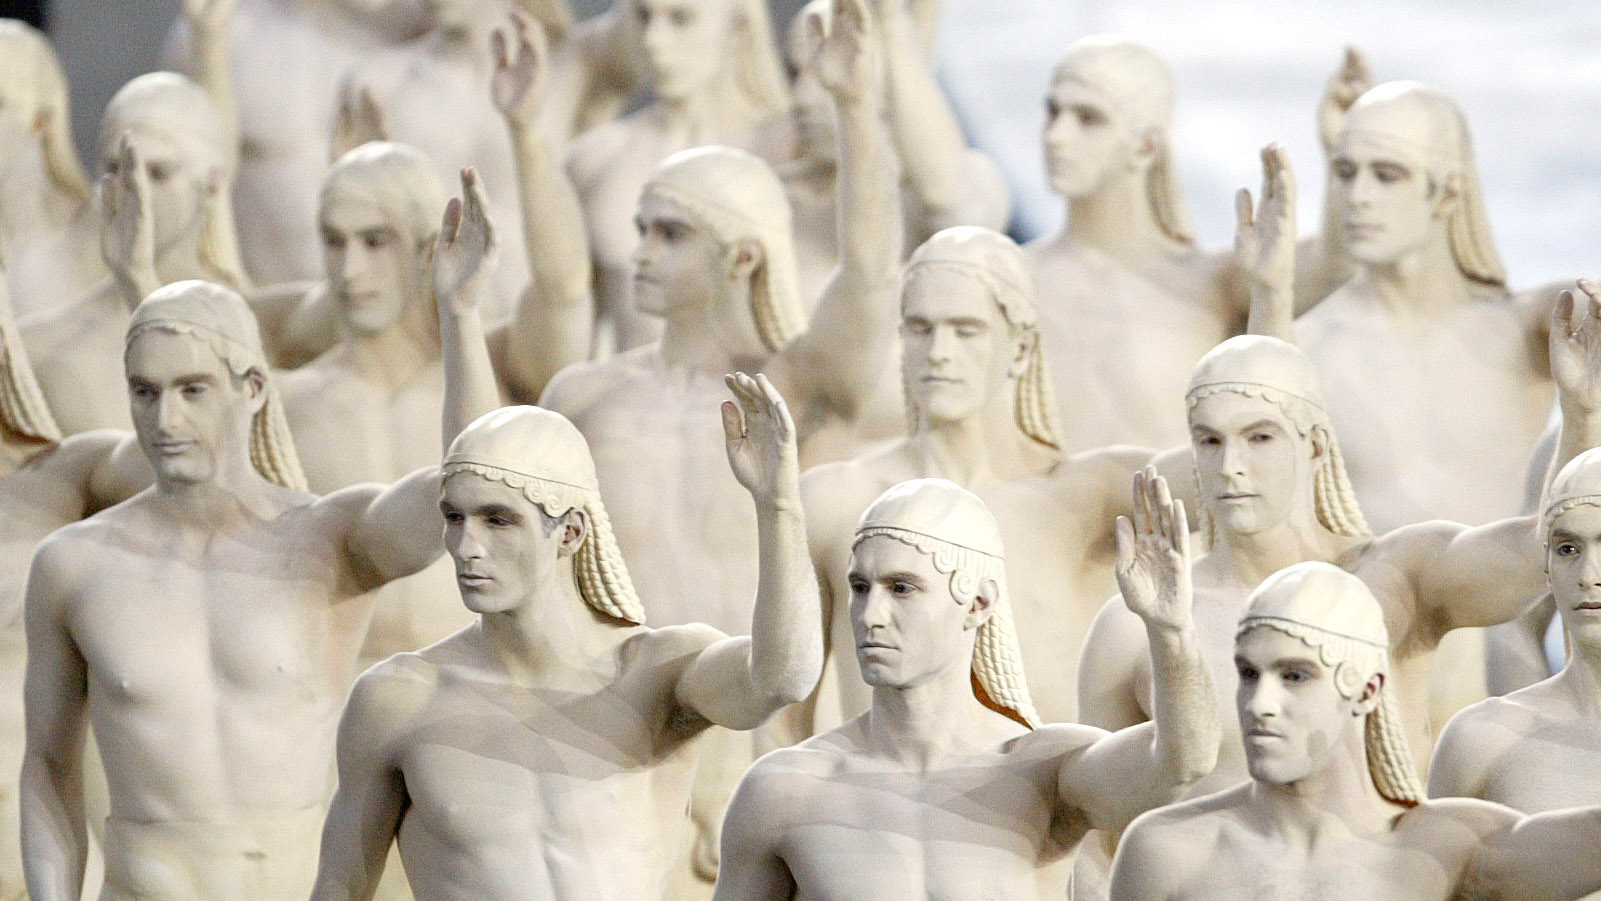 men dressed up as greek statues